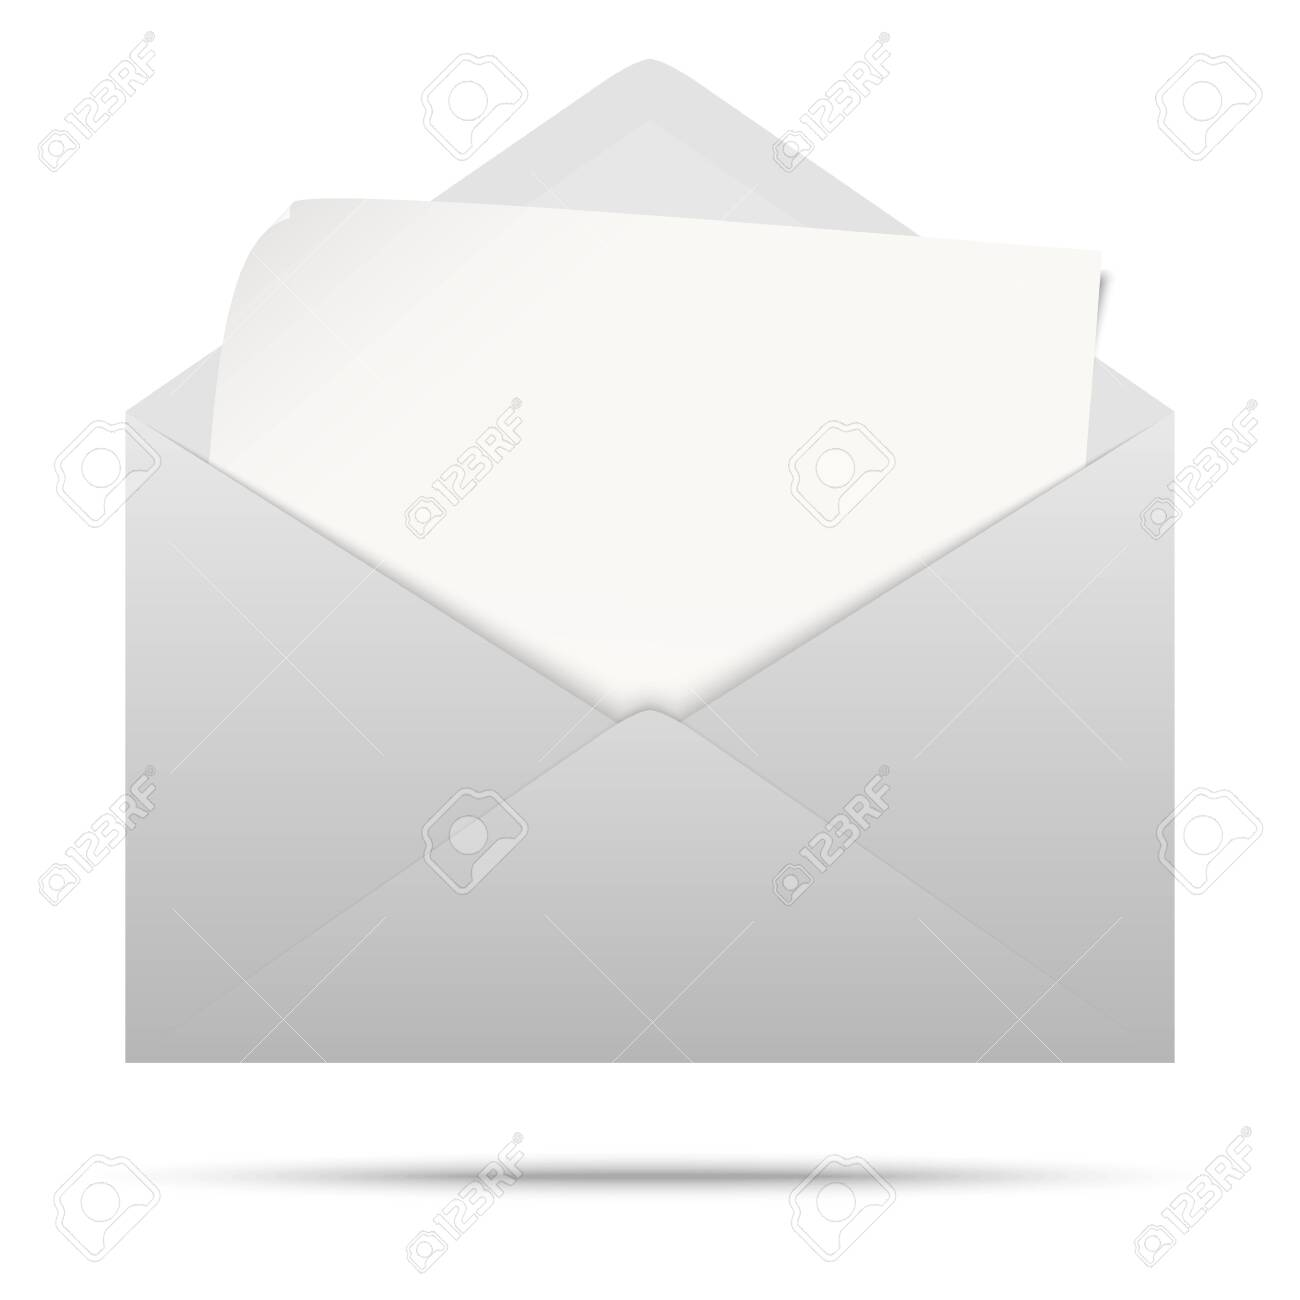 vector illustration with gray colored envelope with white empty paper isolated on white background - 138282078